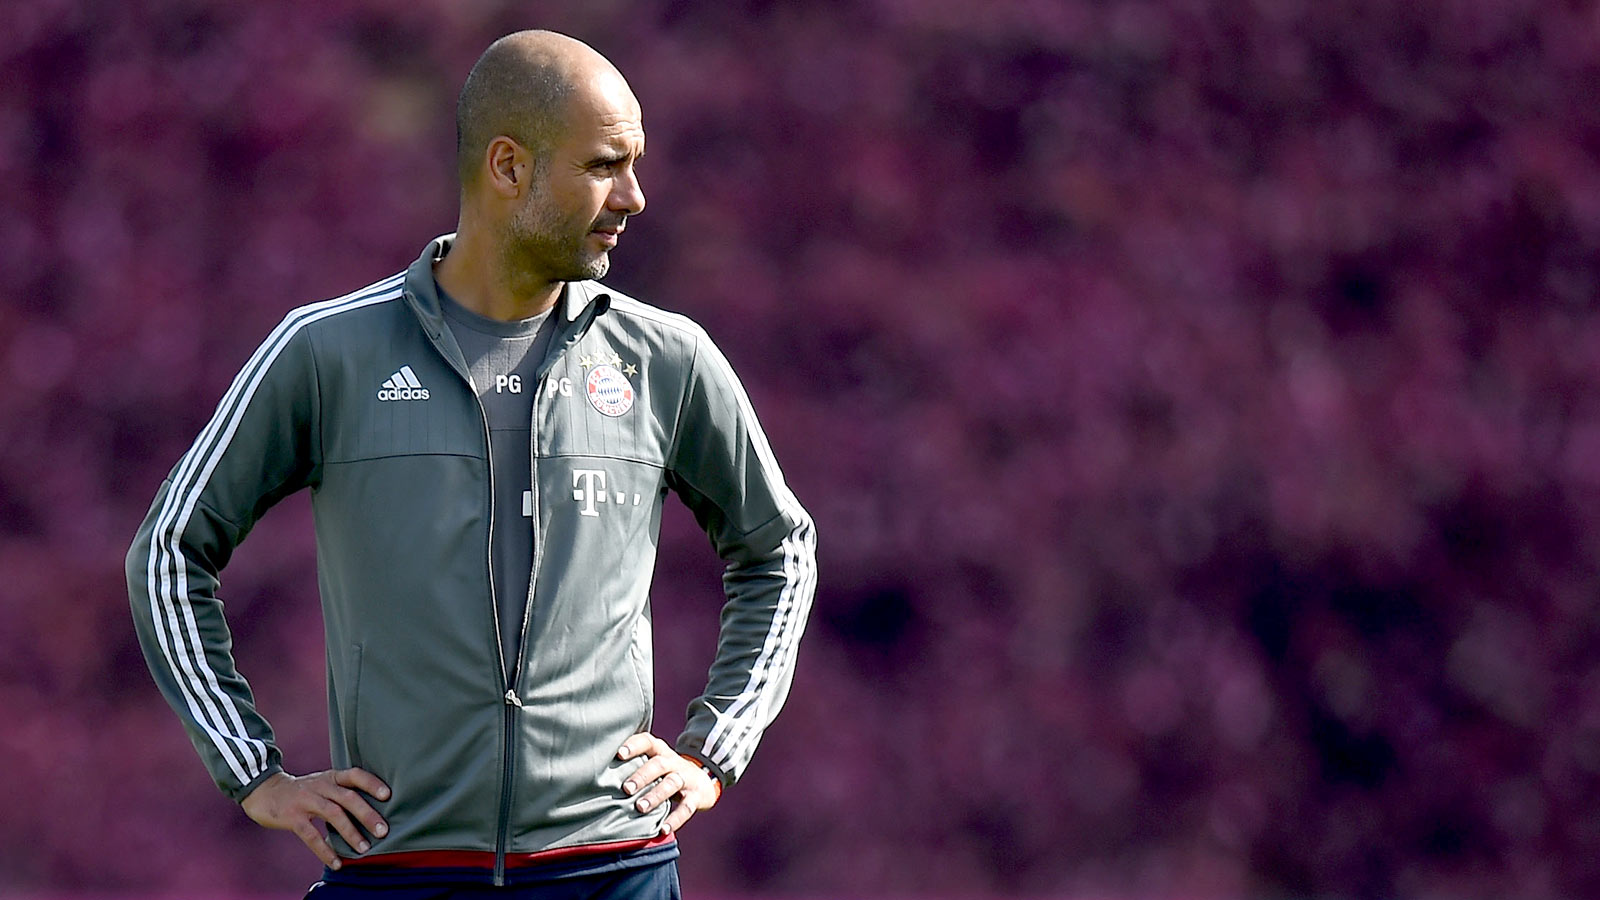 Guardiola's legacy at Bayern dependent on Champions League success